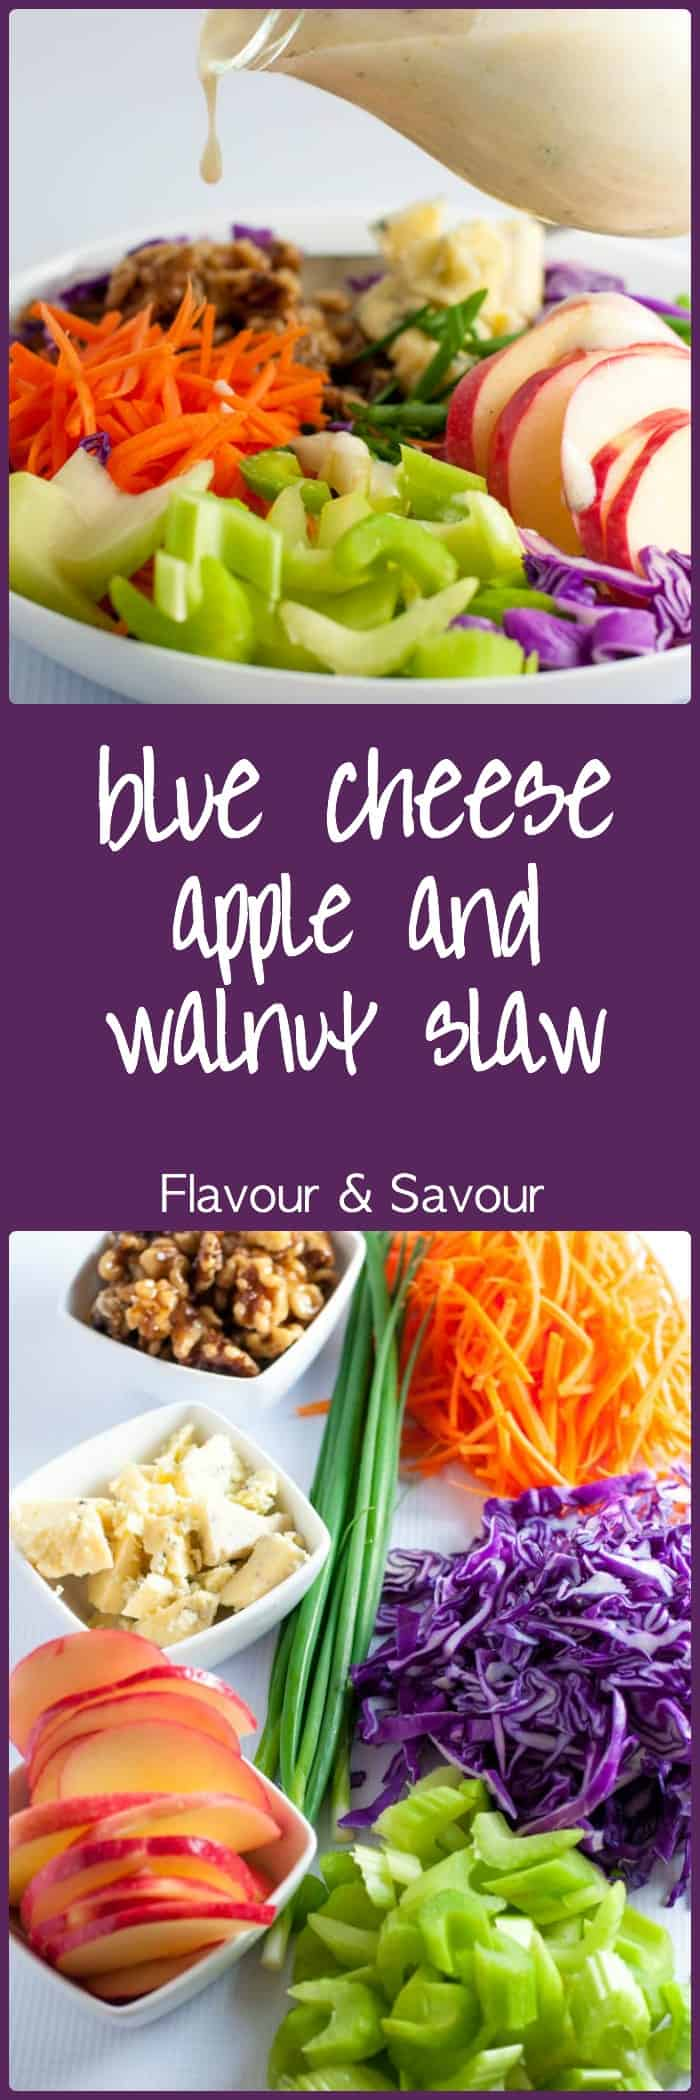 This salad has it all! Colour, crunch, contrasting flavours and a creamy Greek yogurt dressing! Blue Cheese, Apple and Walnut Slaw #flavourandsavour #blue_cheese #coleslaw #apple #walnuts #greekyogurt_dressing